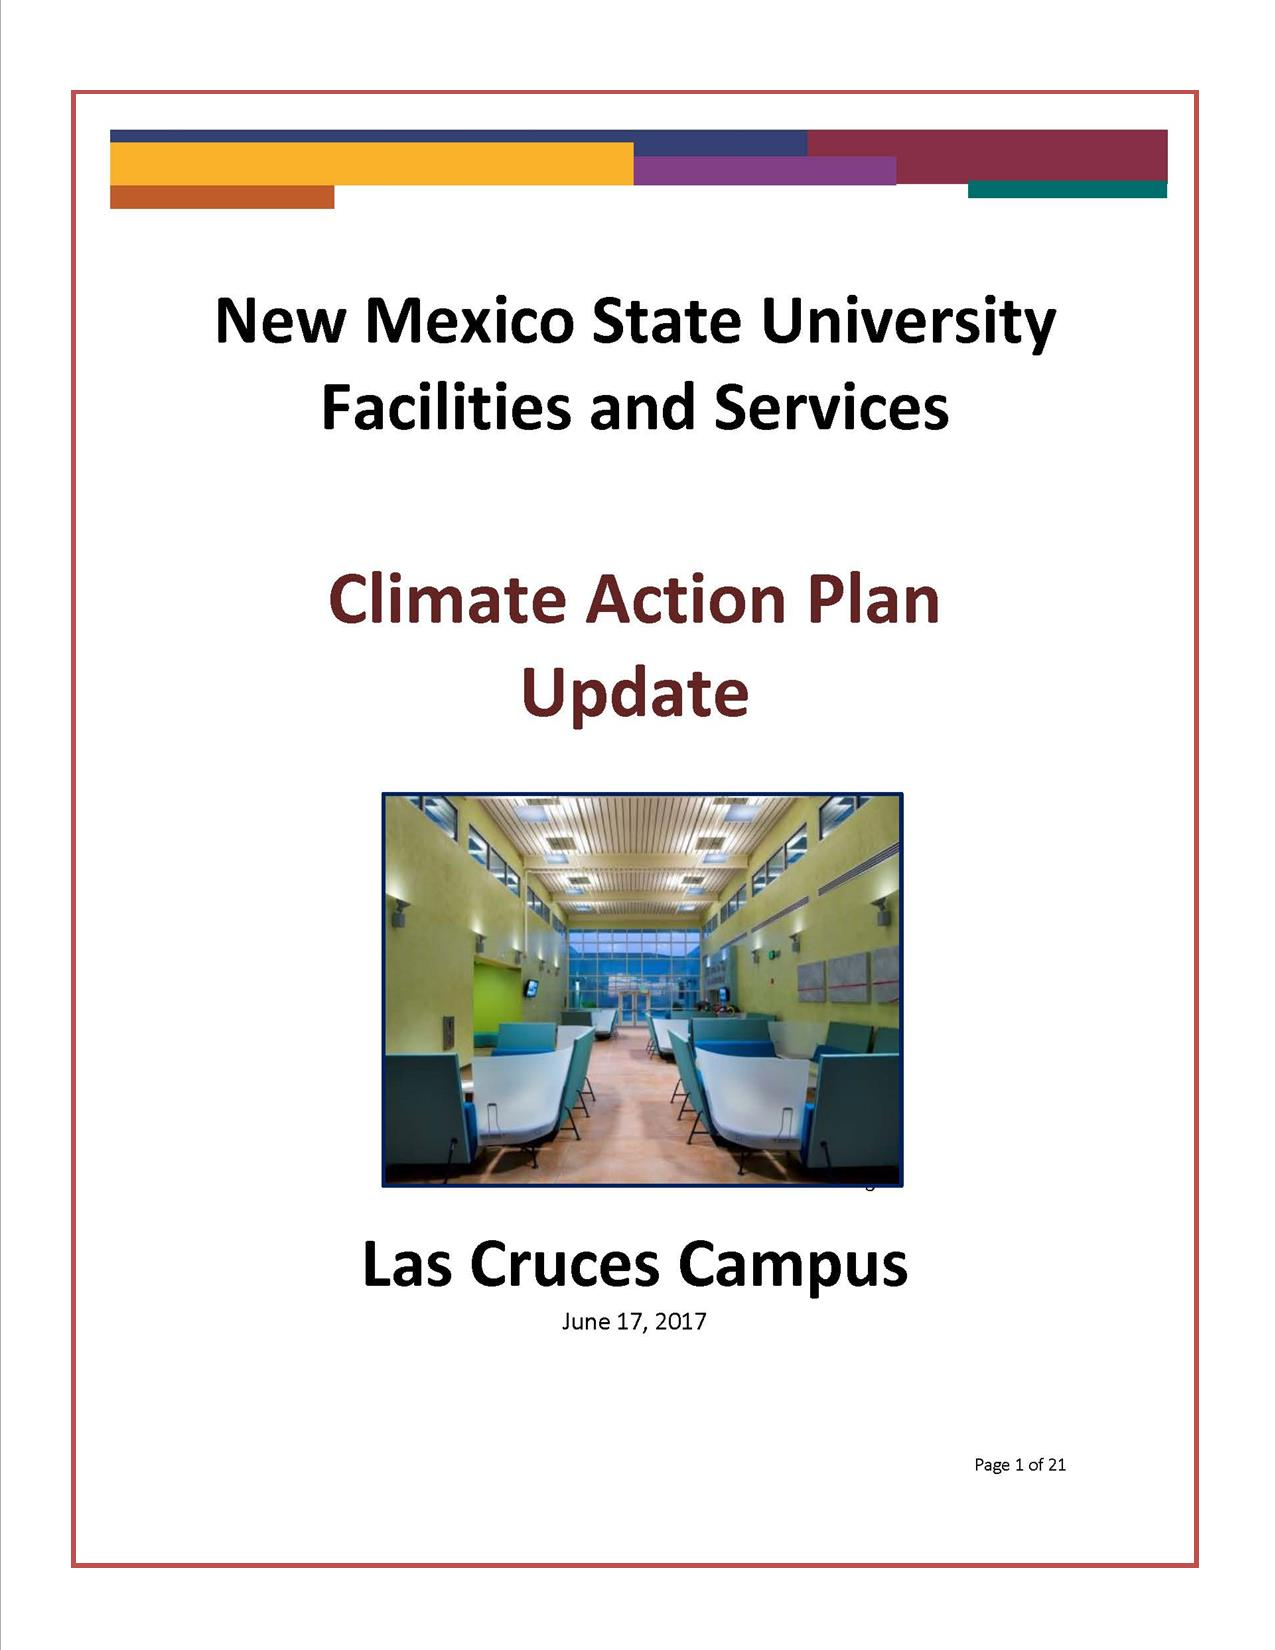 NMSU Climate Action Plan